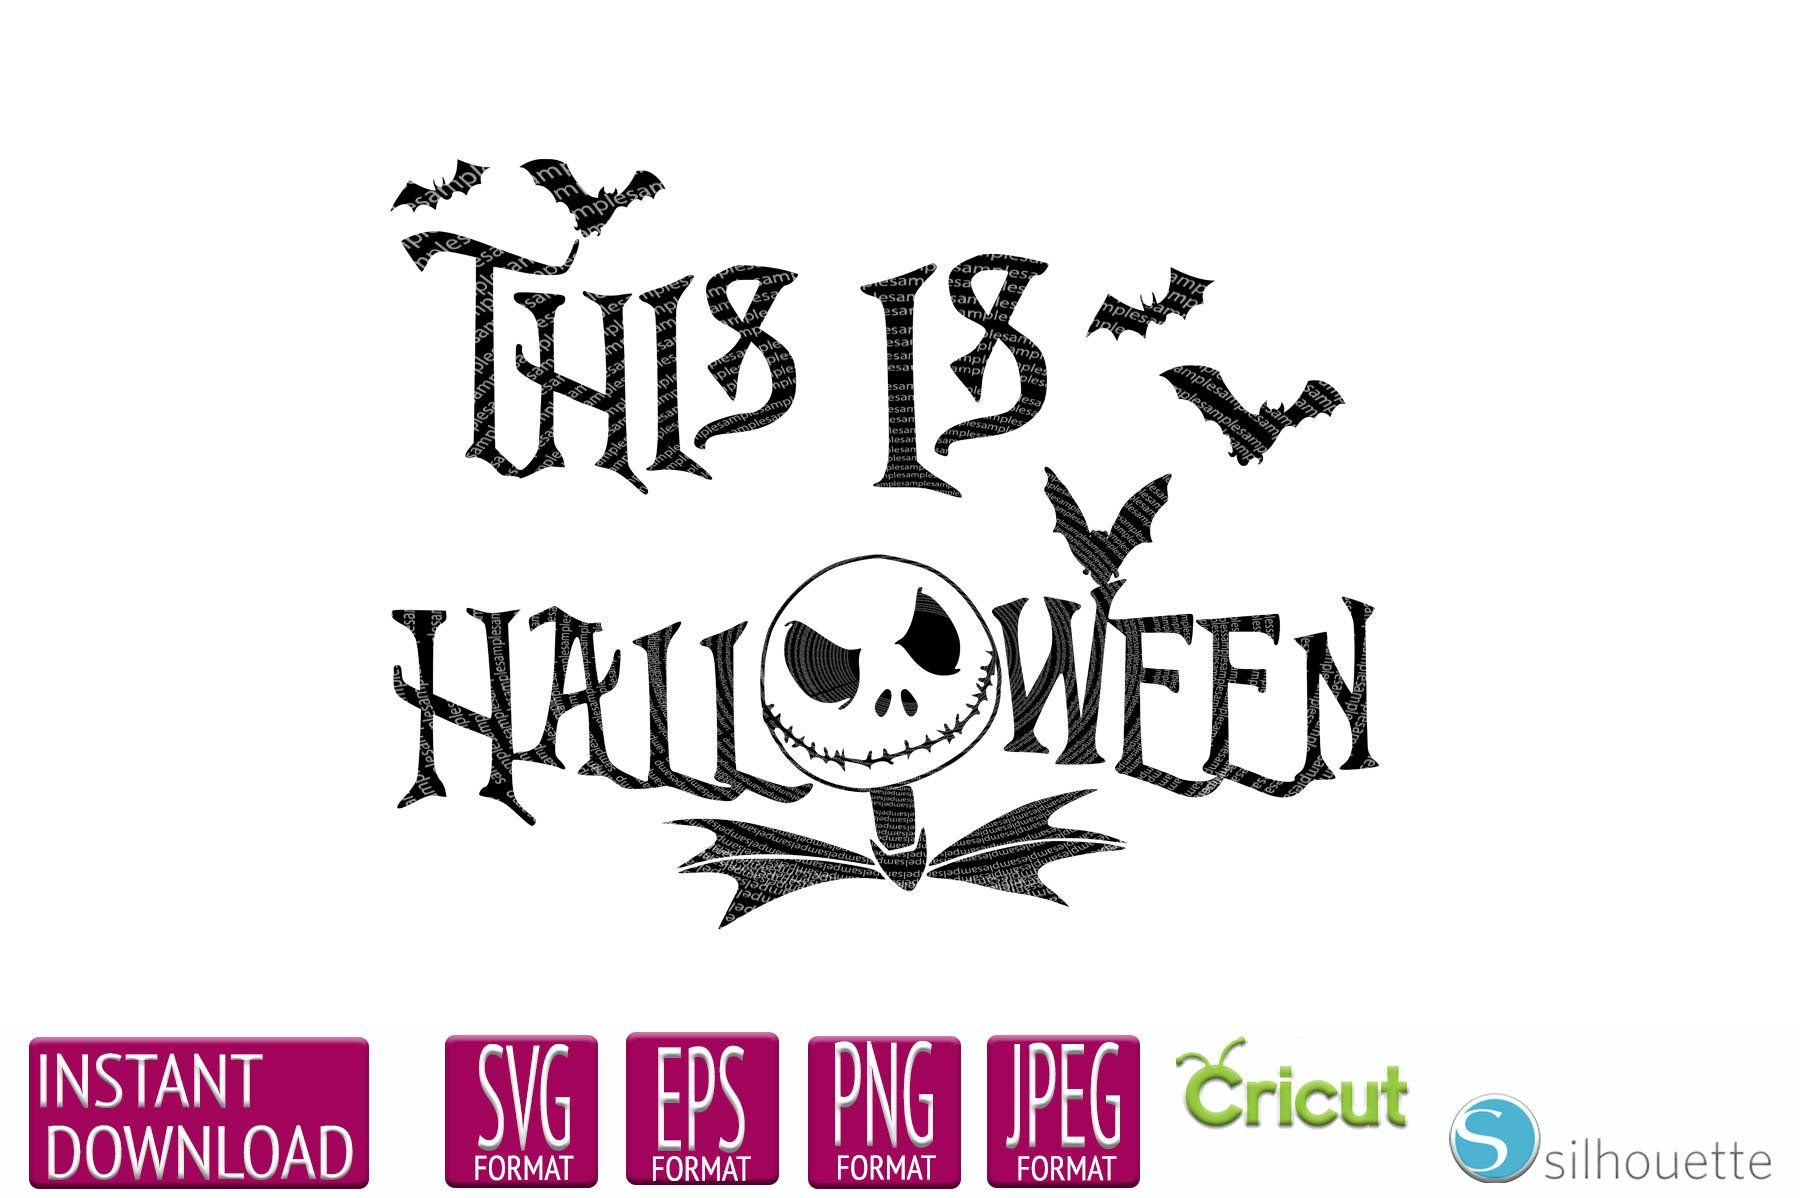 Disney Halloween SVG, Mickey Mouse SVG, Minnie Mouse SVG